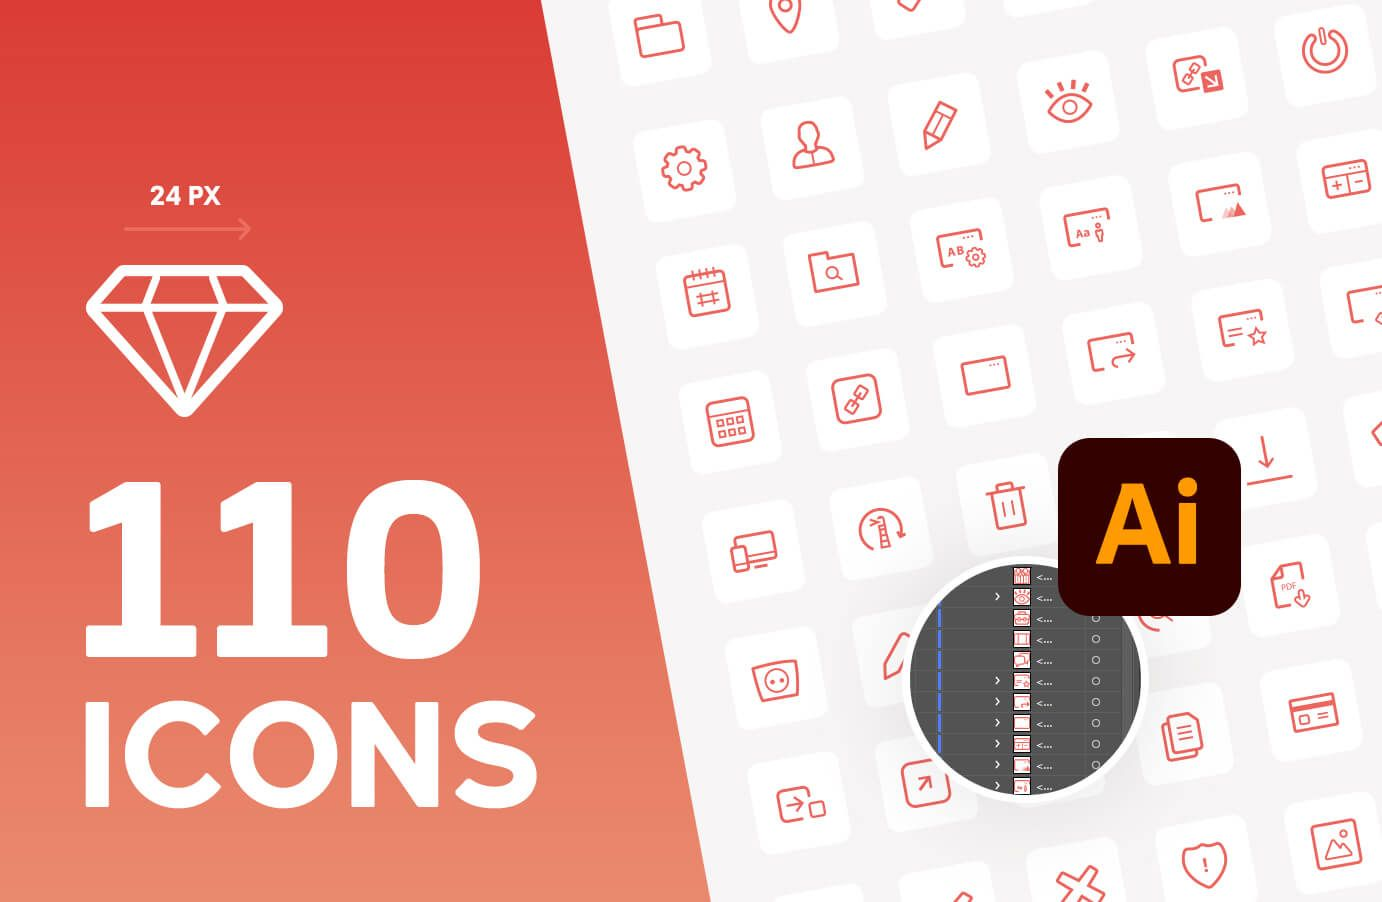 Free SVG icons 24px package